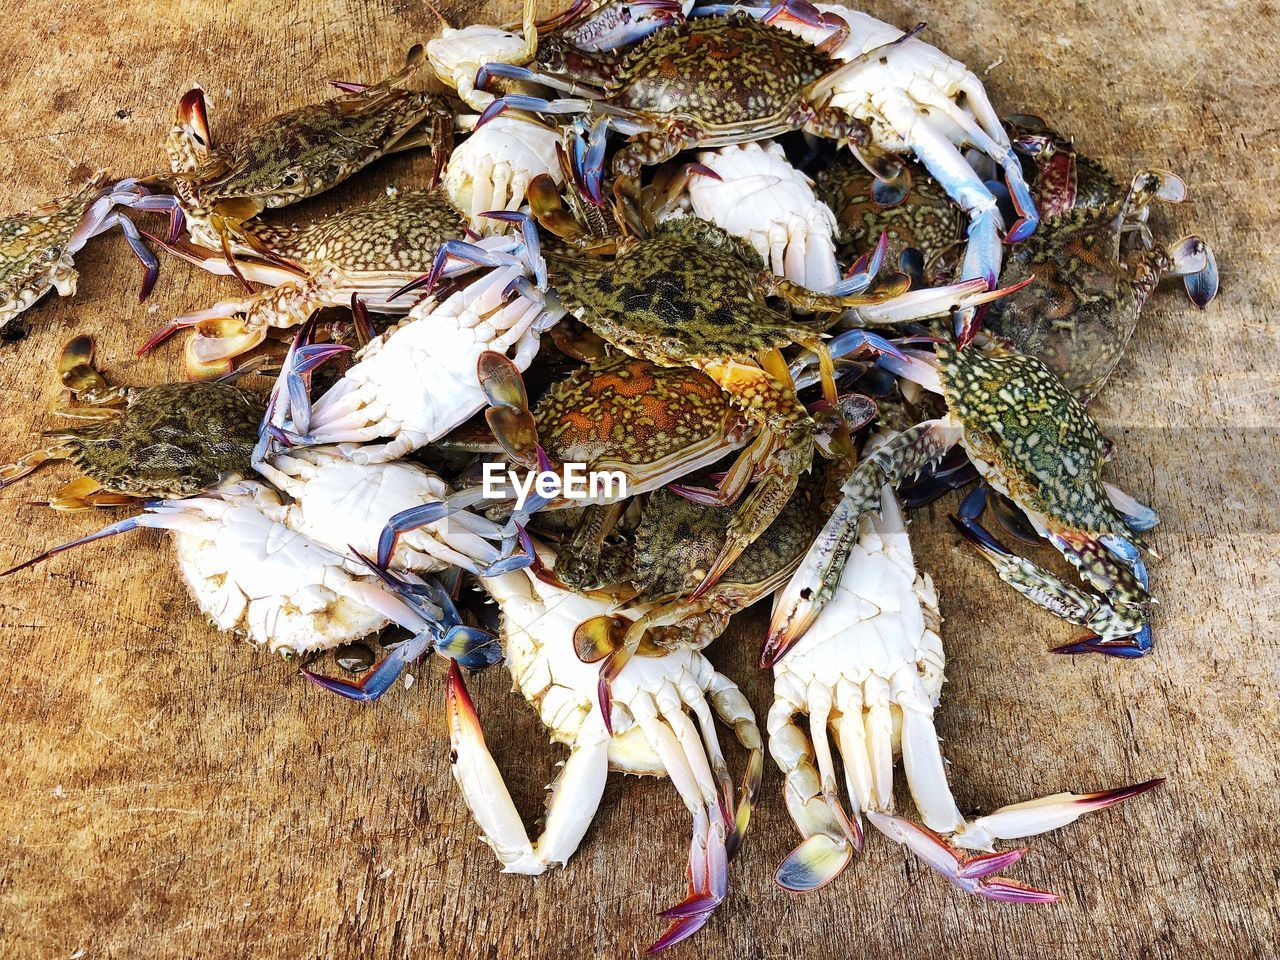 seafood, animal, crab, high angle view, food, food and drink, freshness, vertebrate, no people, crustacean, healthy eating, wellbeing, animal themes, day, crab - seafood, group of animals, fish, animal wildlife, close-up, outdoors